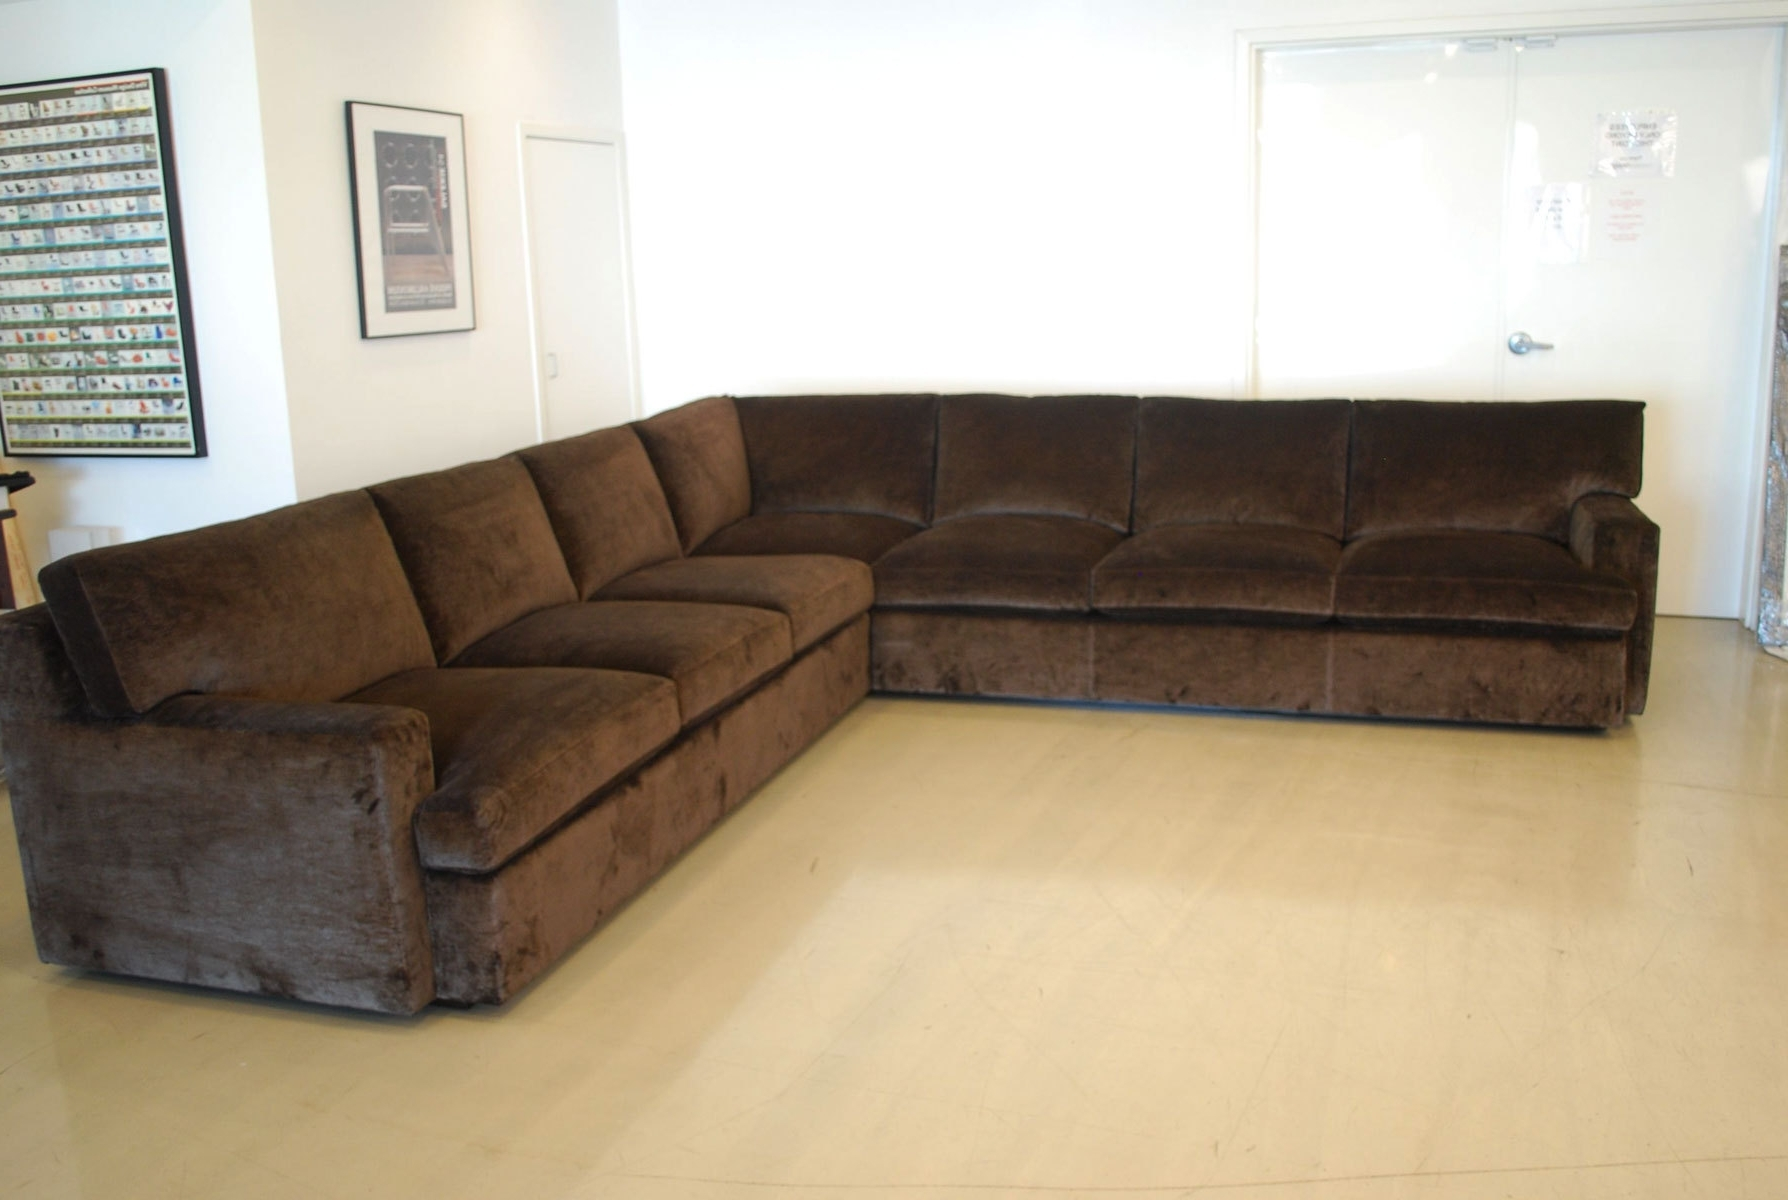 2018 Sectional Sofas At The Brick Within Amusing Large L Shaped Sectional Sofas 99 On The Brick Sofa Bed (View 9 of 20)